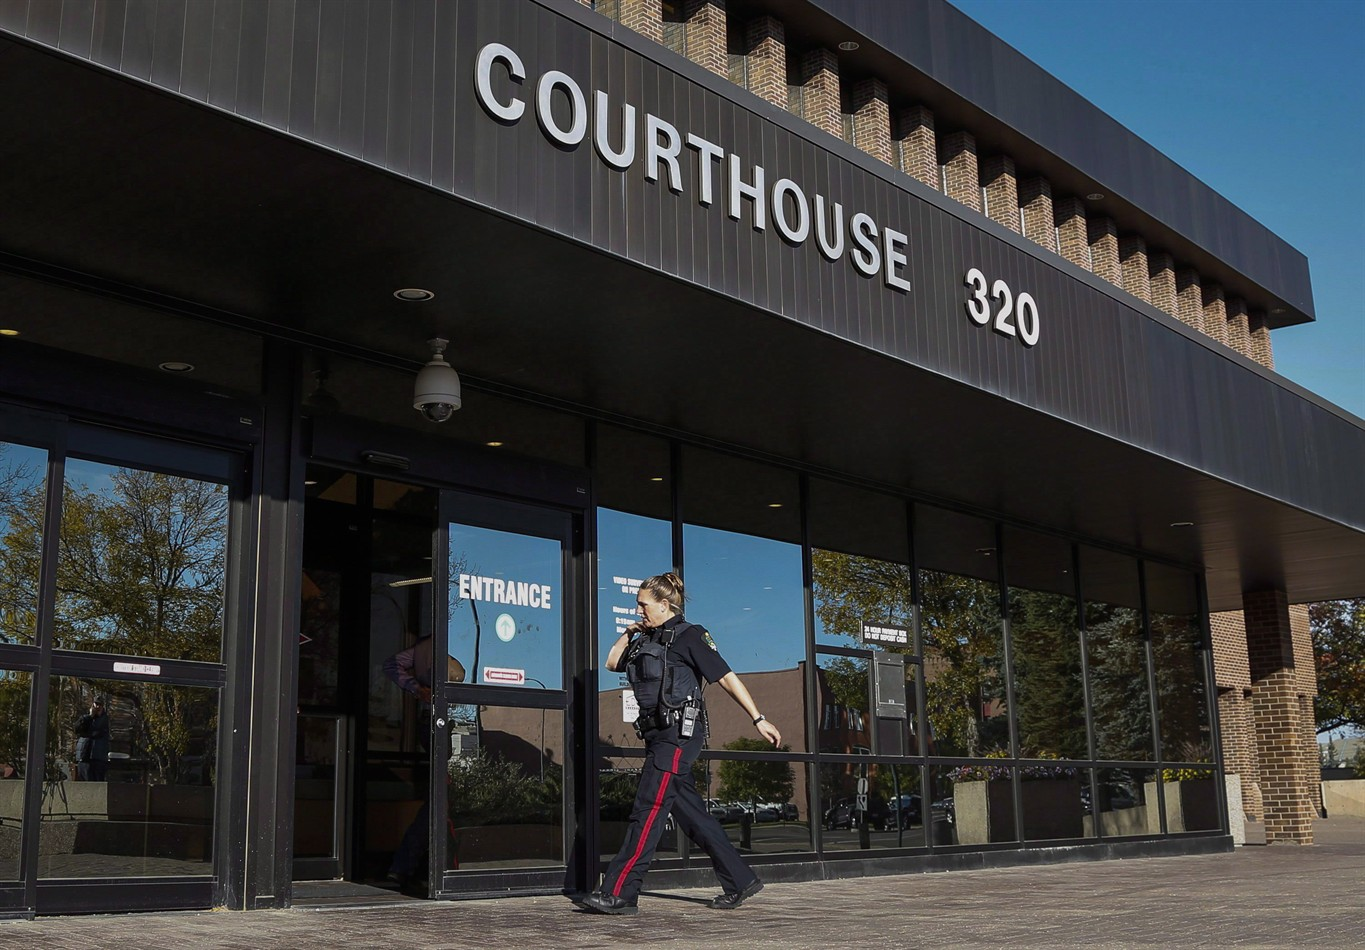 Guilty plea expected on 1st day of Lethbridge triple murder trial